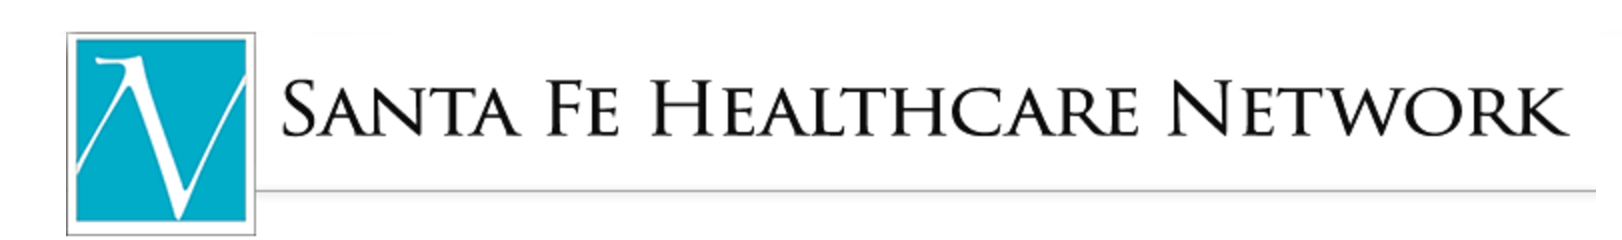 Santa Fe Healthcare Network